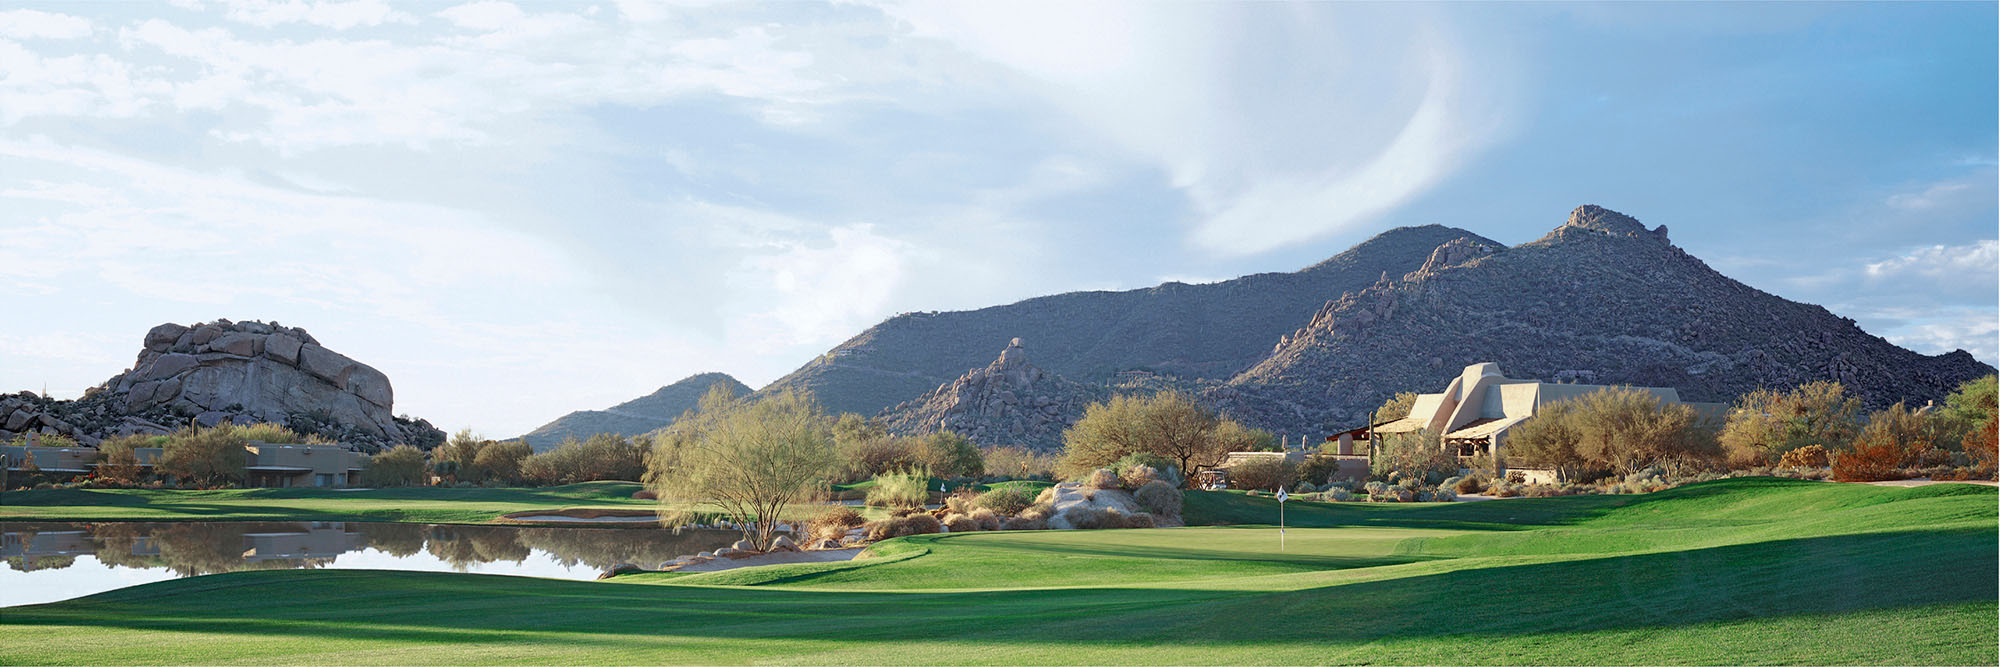 Golf Course Image - Boulders No. 18